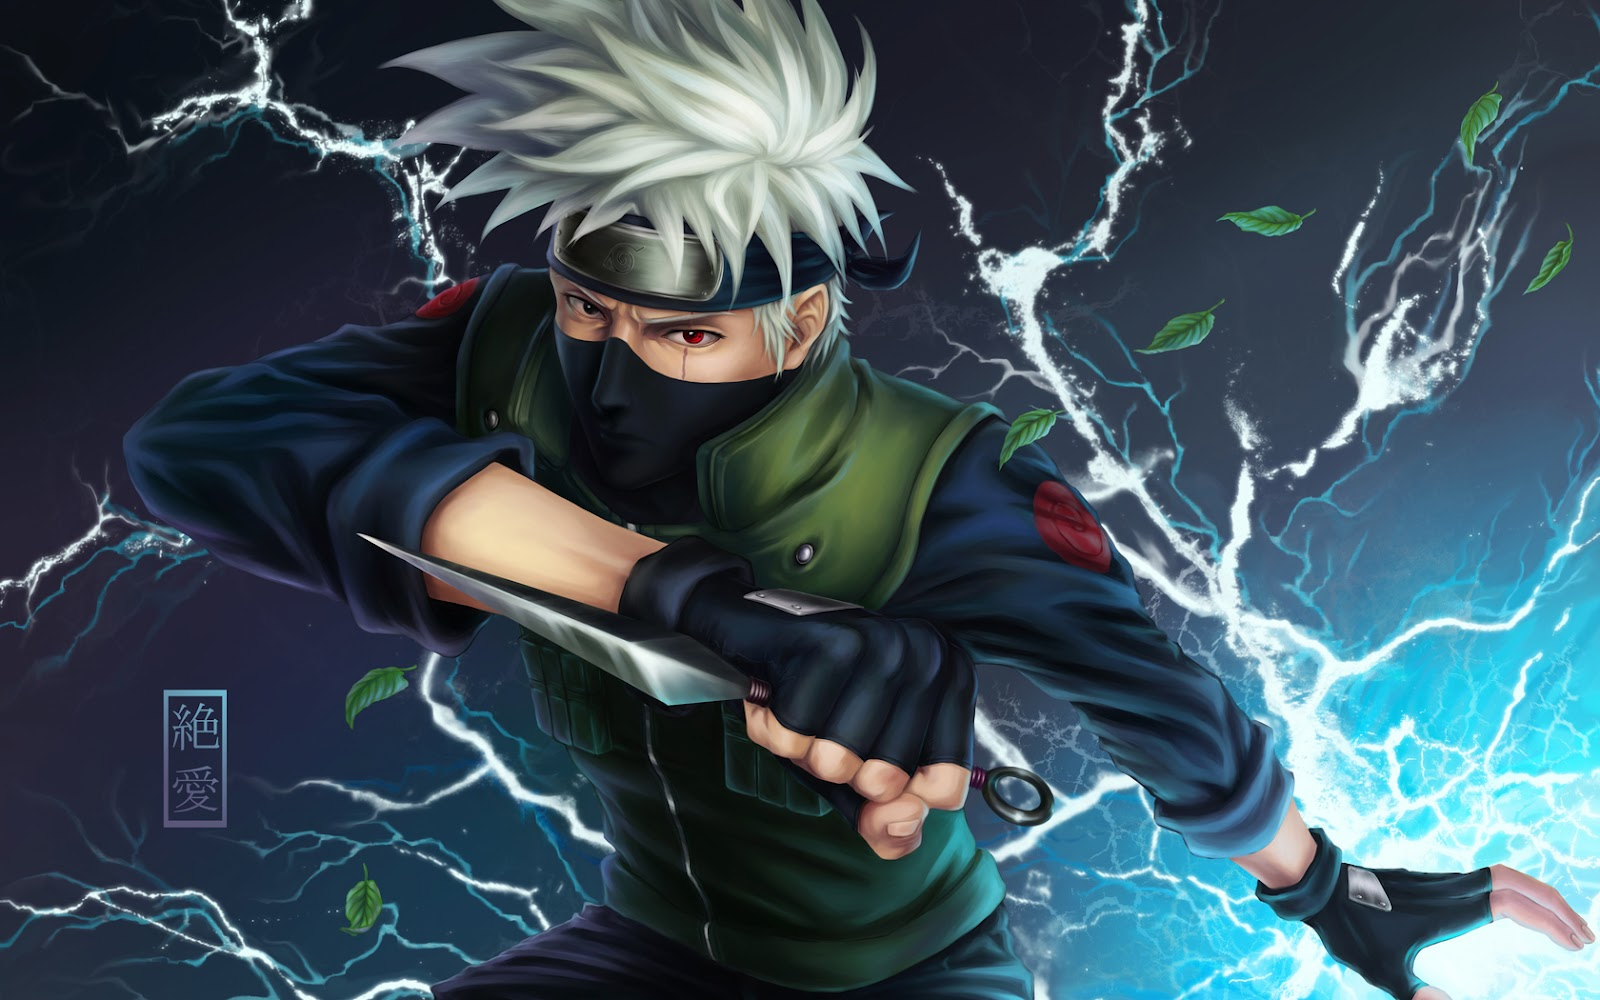 naruto shippuden new hd wallpaper for desktop anime pictures 1600x1000